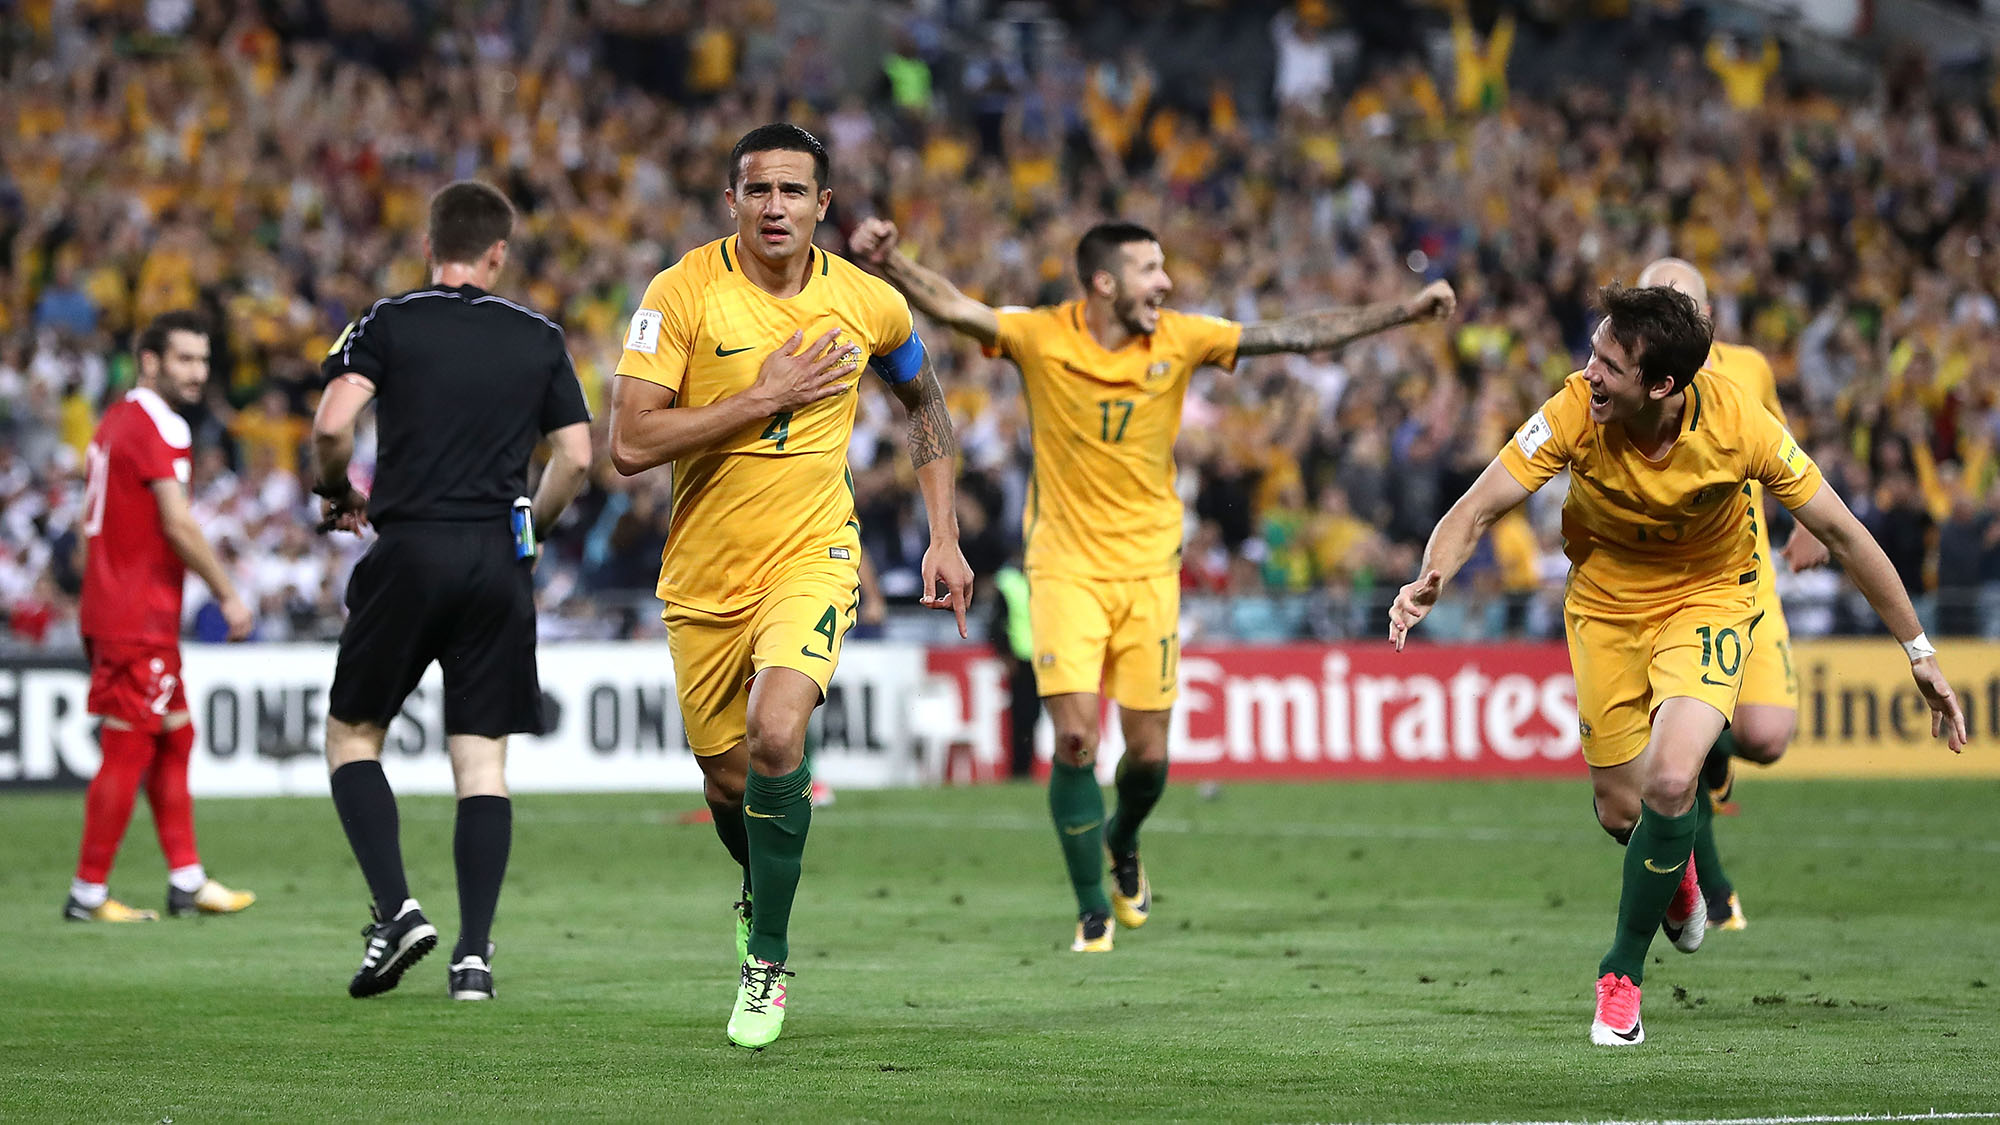 Federation Internationale de Football Association probing Cahill for 'sponsored' celebration